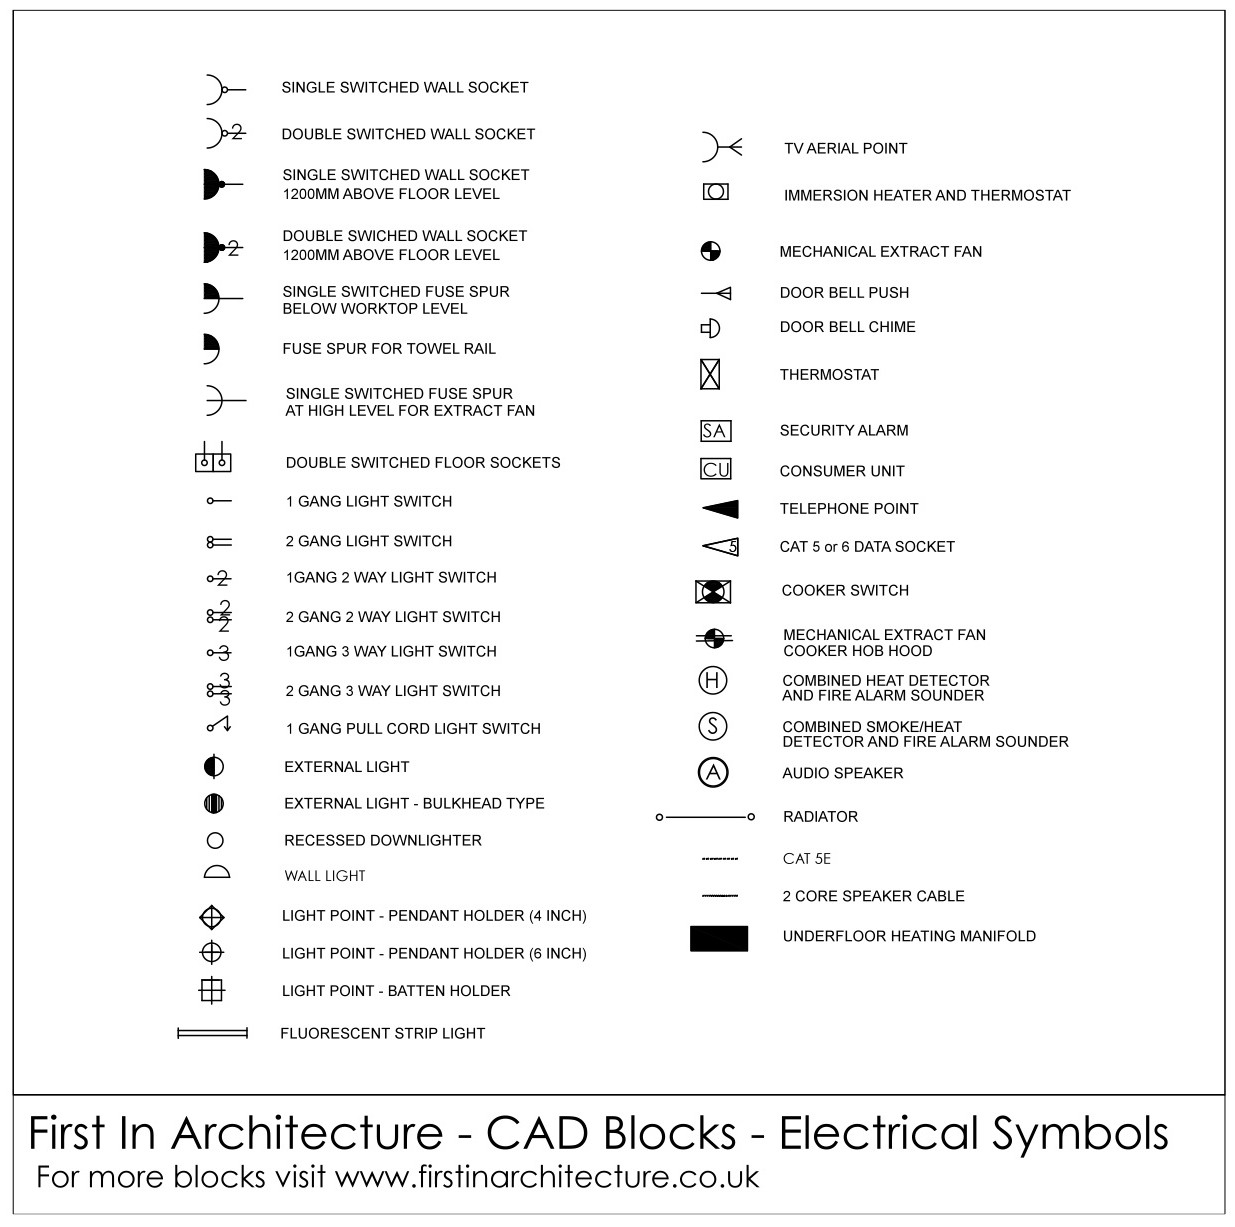 free cad blocks electrical symbols rh firstinarchitecture co uk CAD Symbol for Electrical Outlet Electrical Symbols for Blueprints